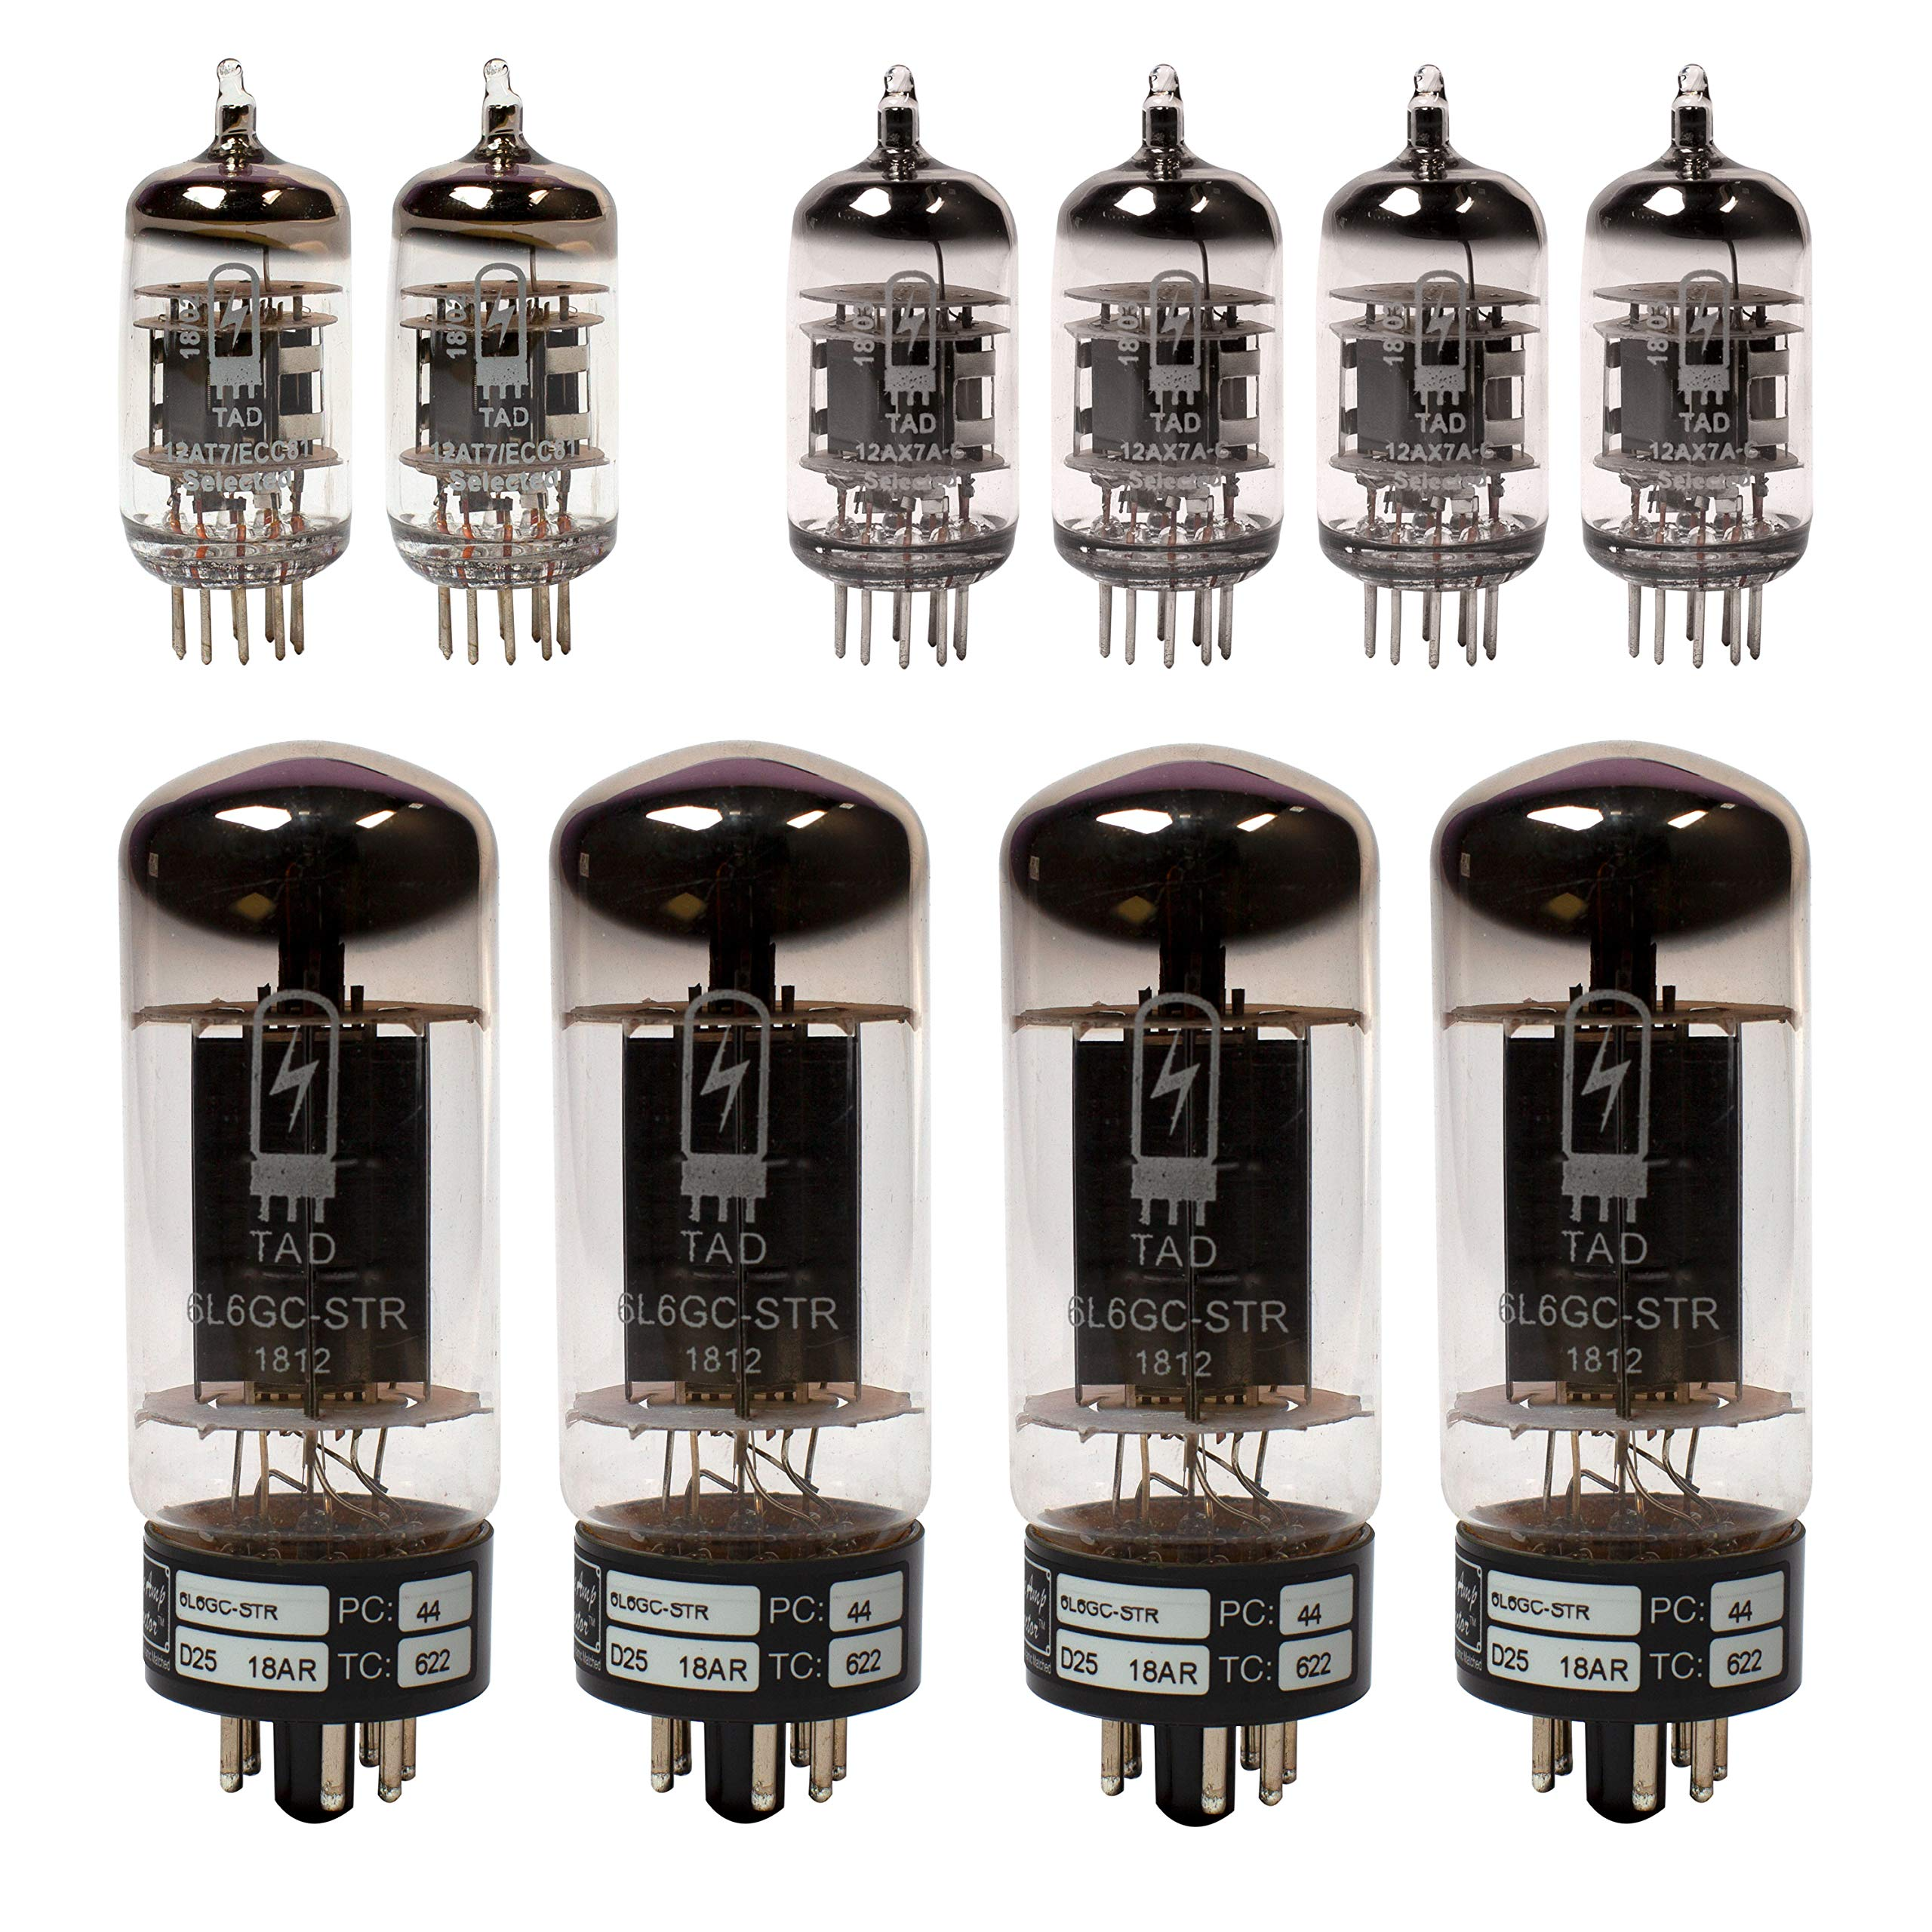 Fender Twin Reverb Tube Set with Matched Power Tubes, TAD brand tubes